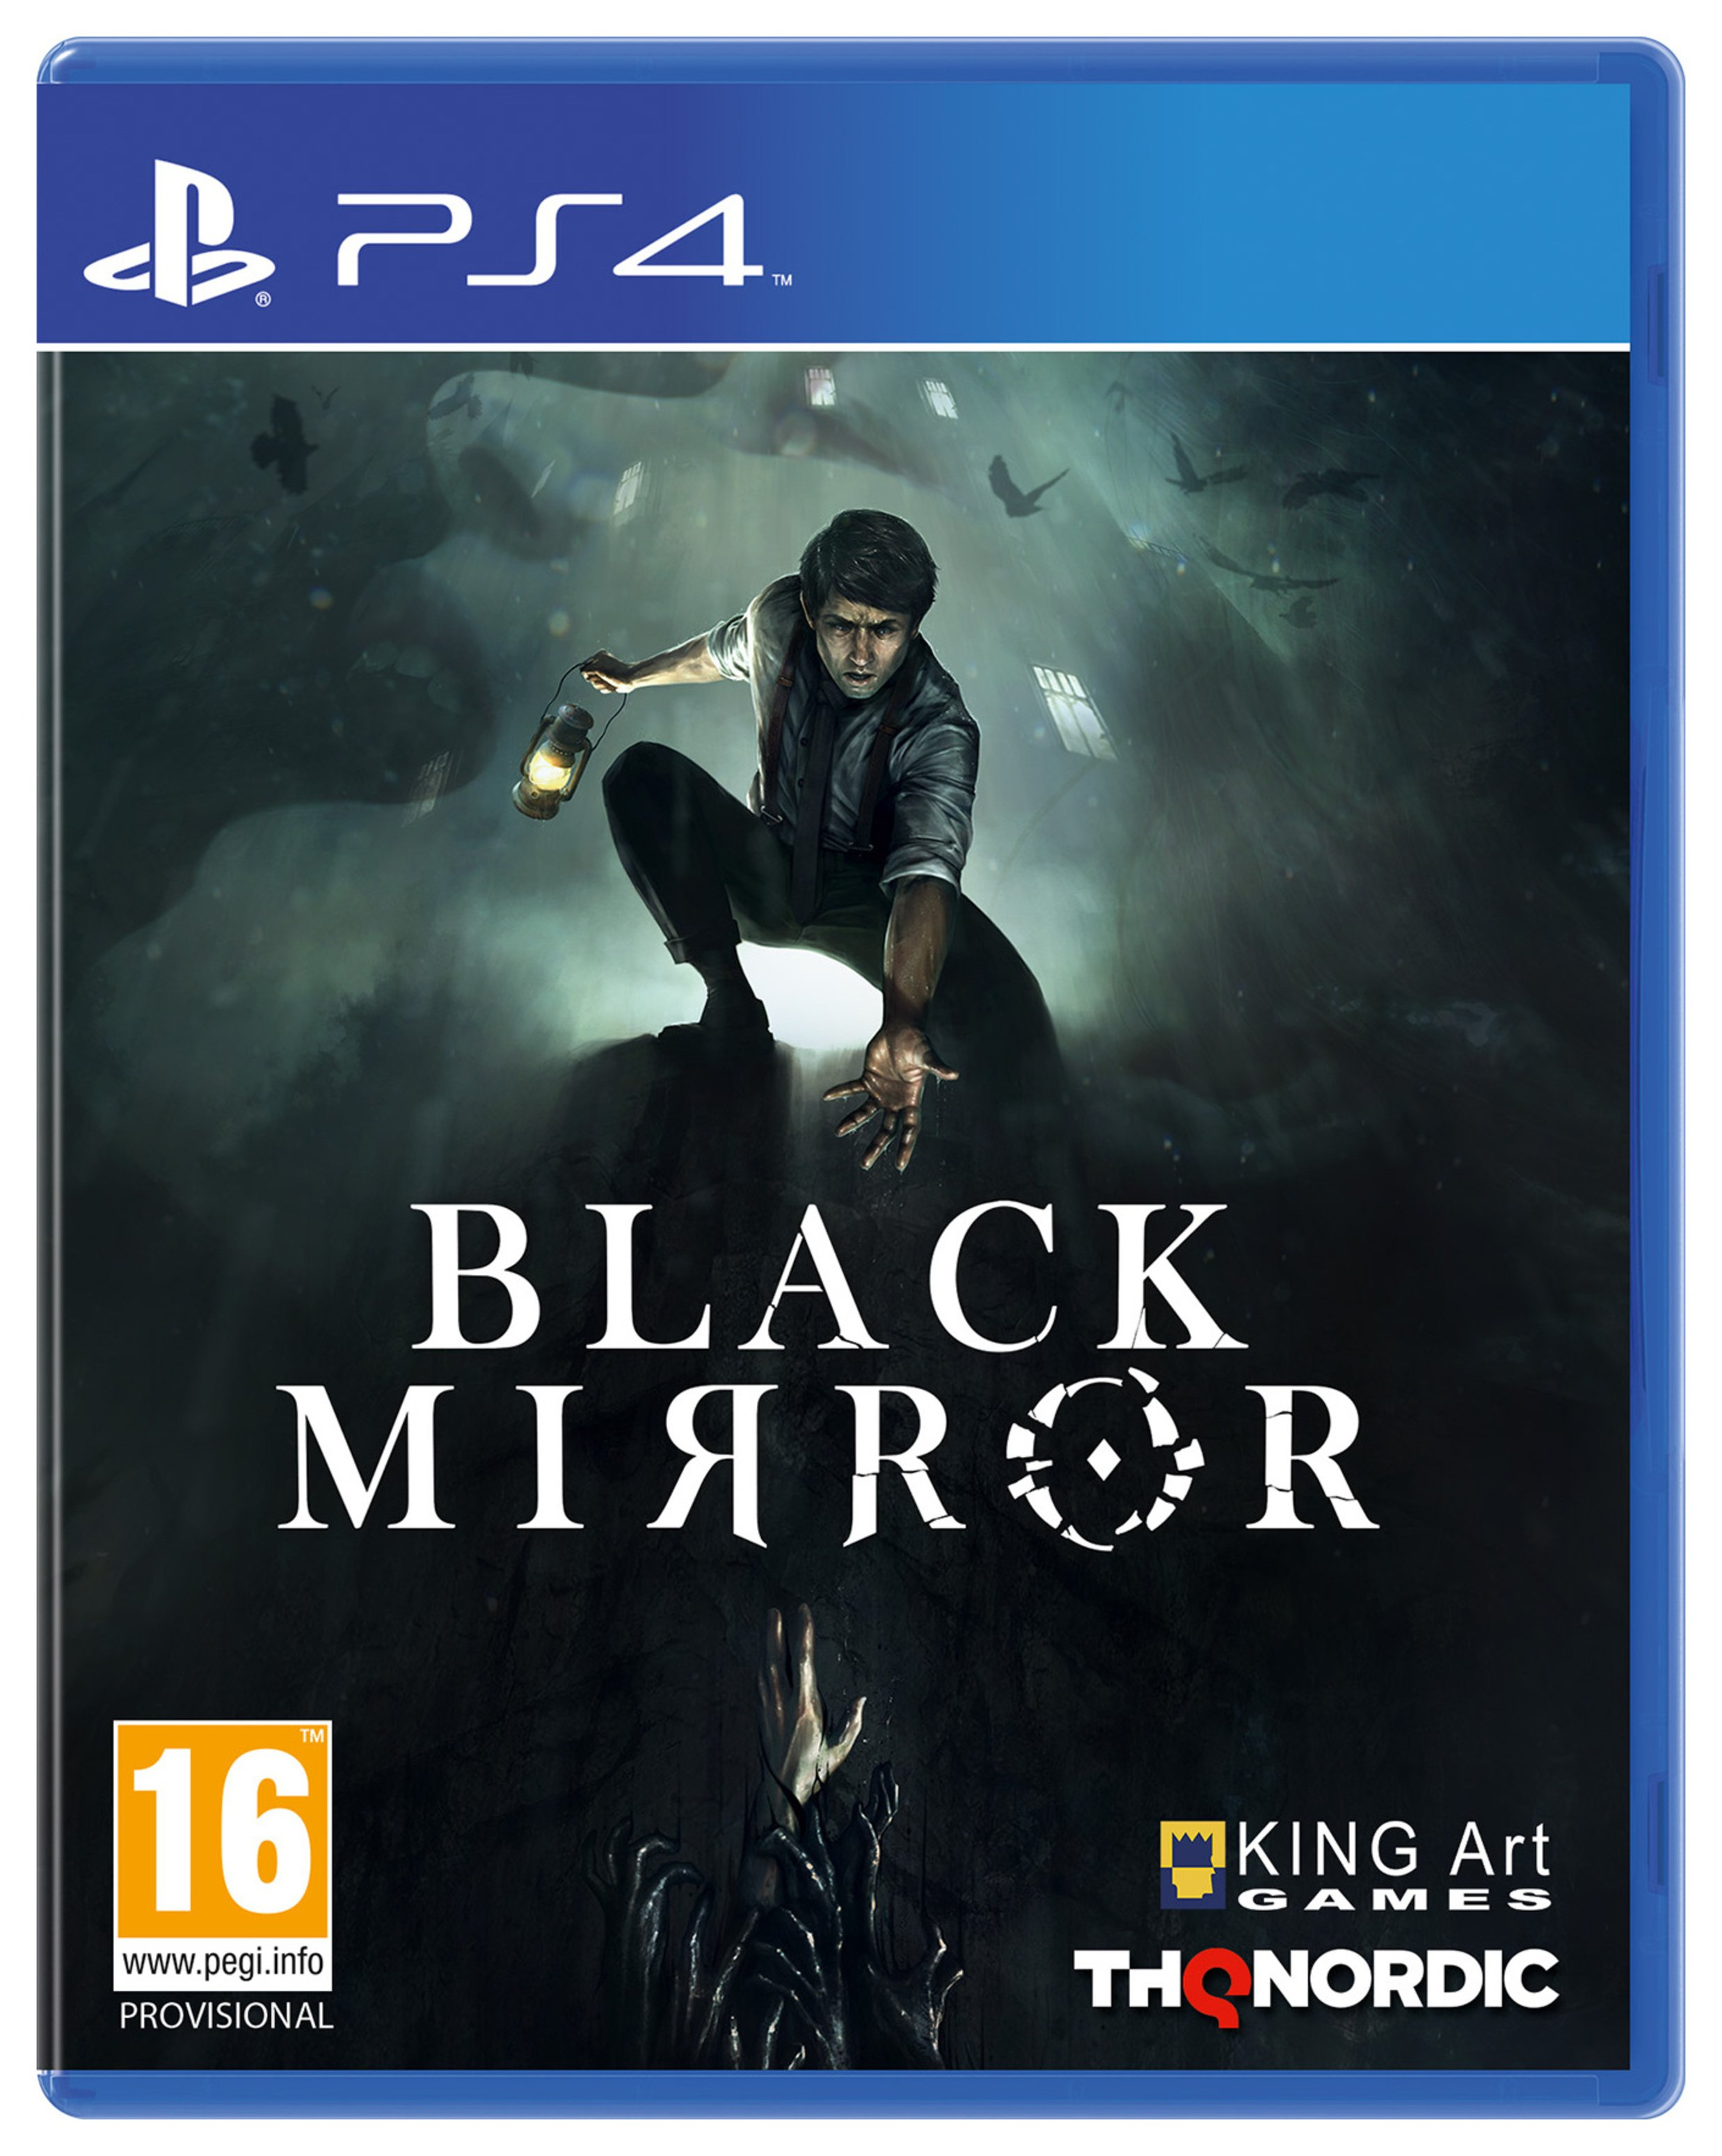 Image of Black Mirror PS4 Game